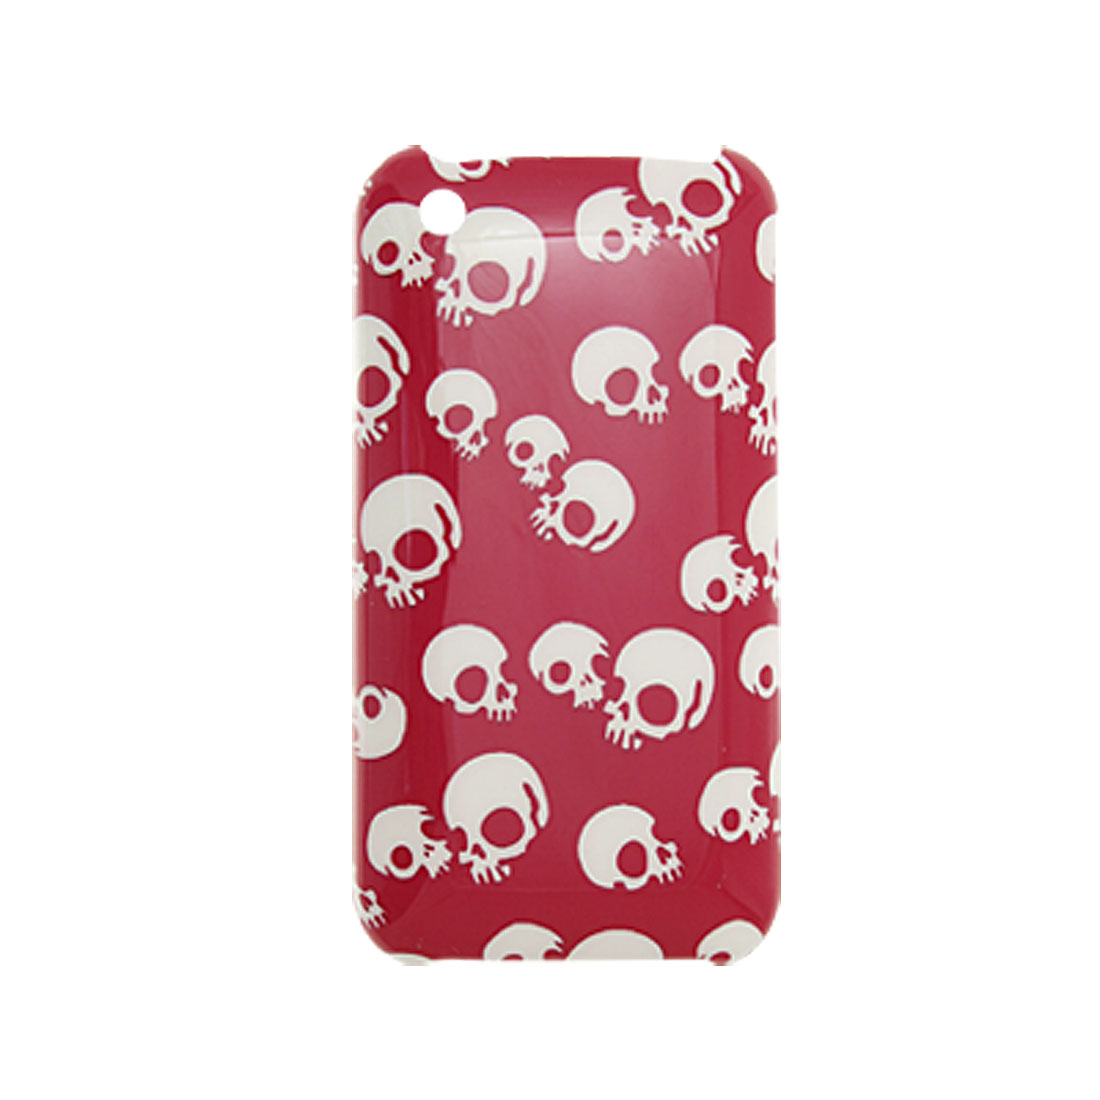 Protector Back Cover Case for iPhone 3G